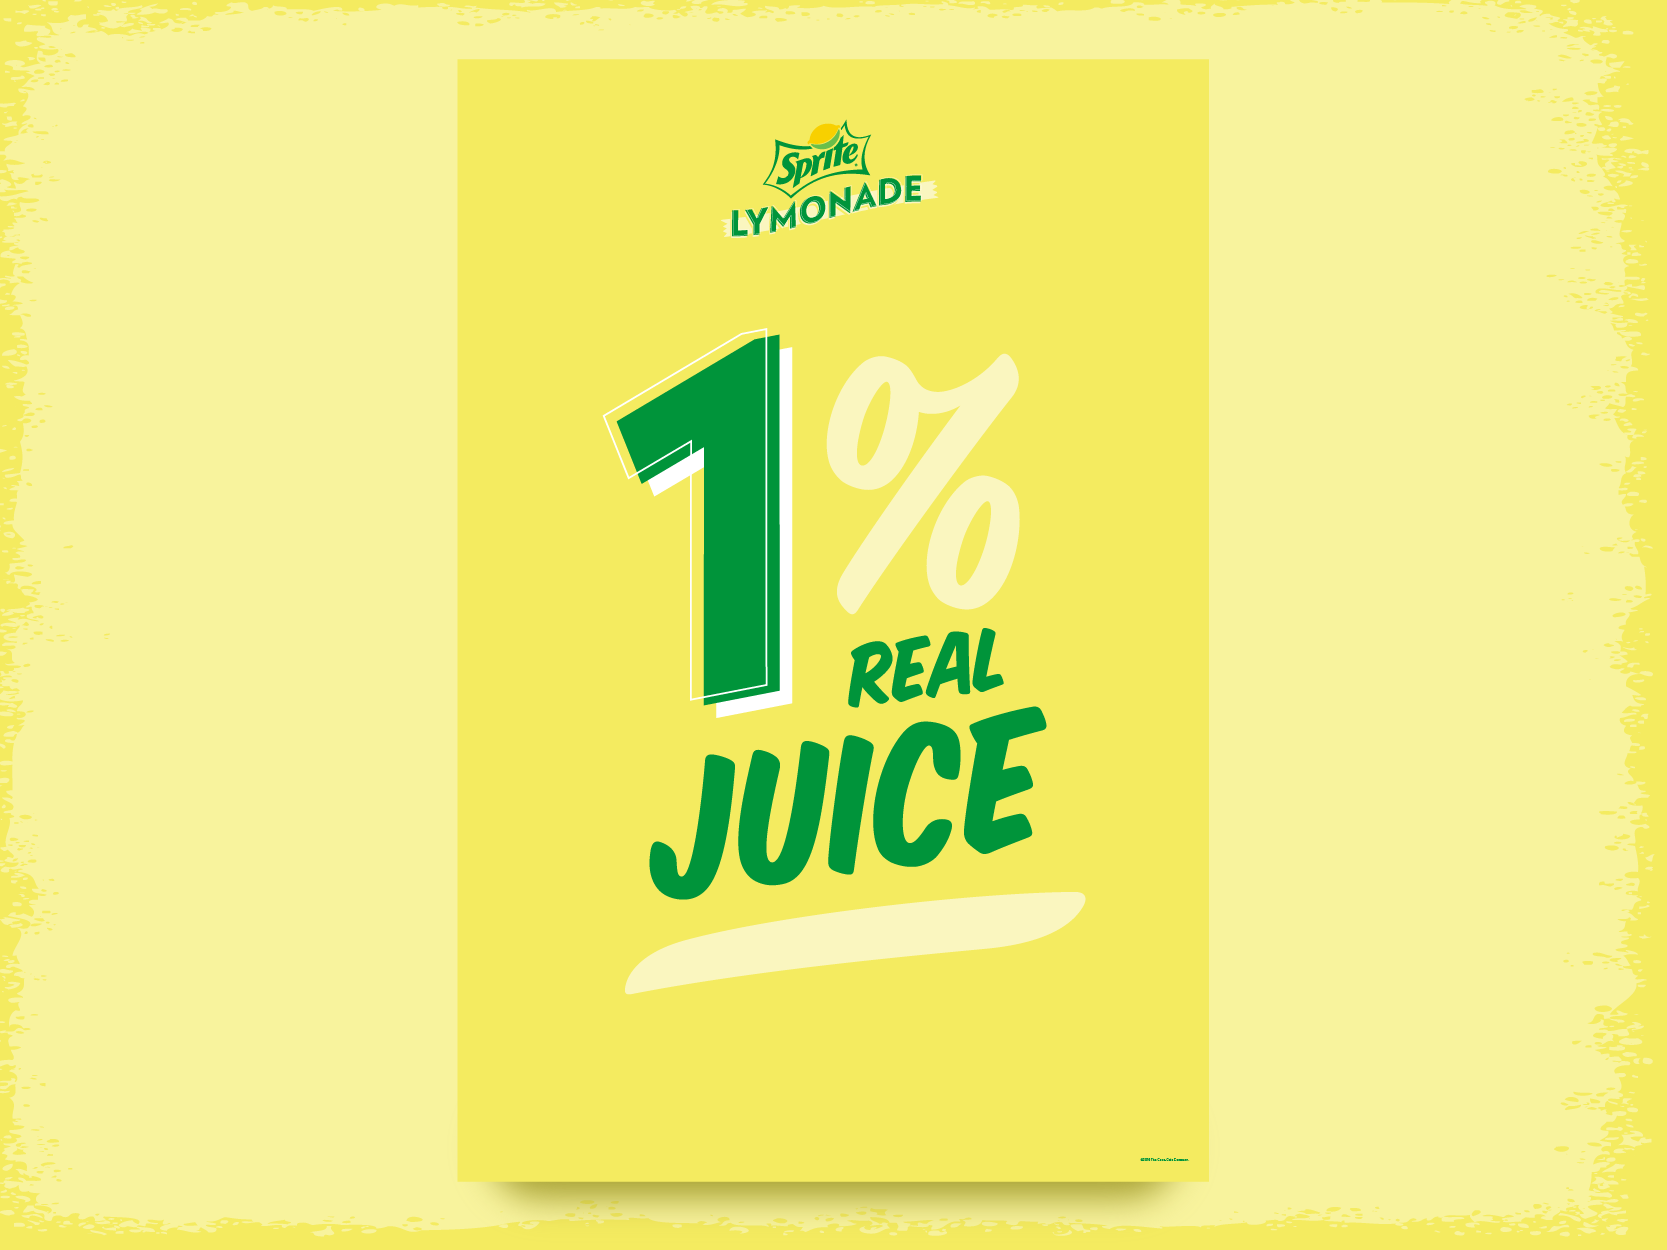 Sprite Lymonade (Posters #2) by Katrina Lenzly on Dribbble